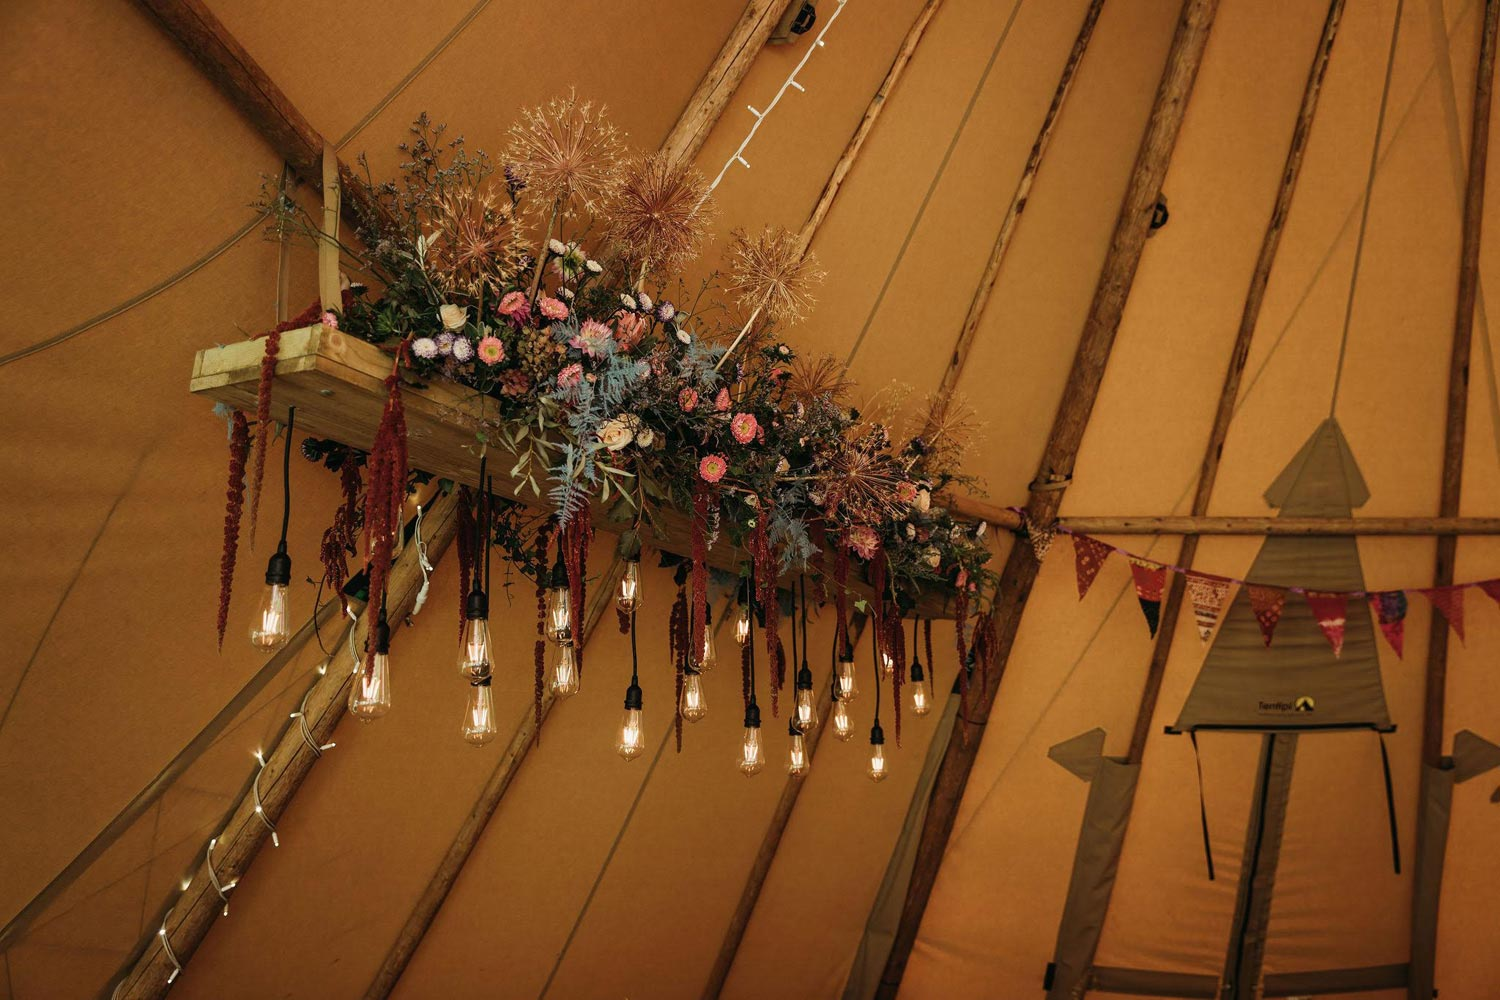 Hanging tipi floral decoration based around eco-friendly foraged foliage and seedheads